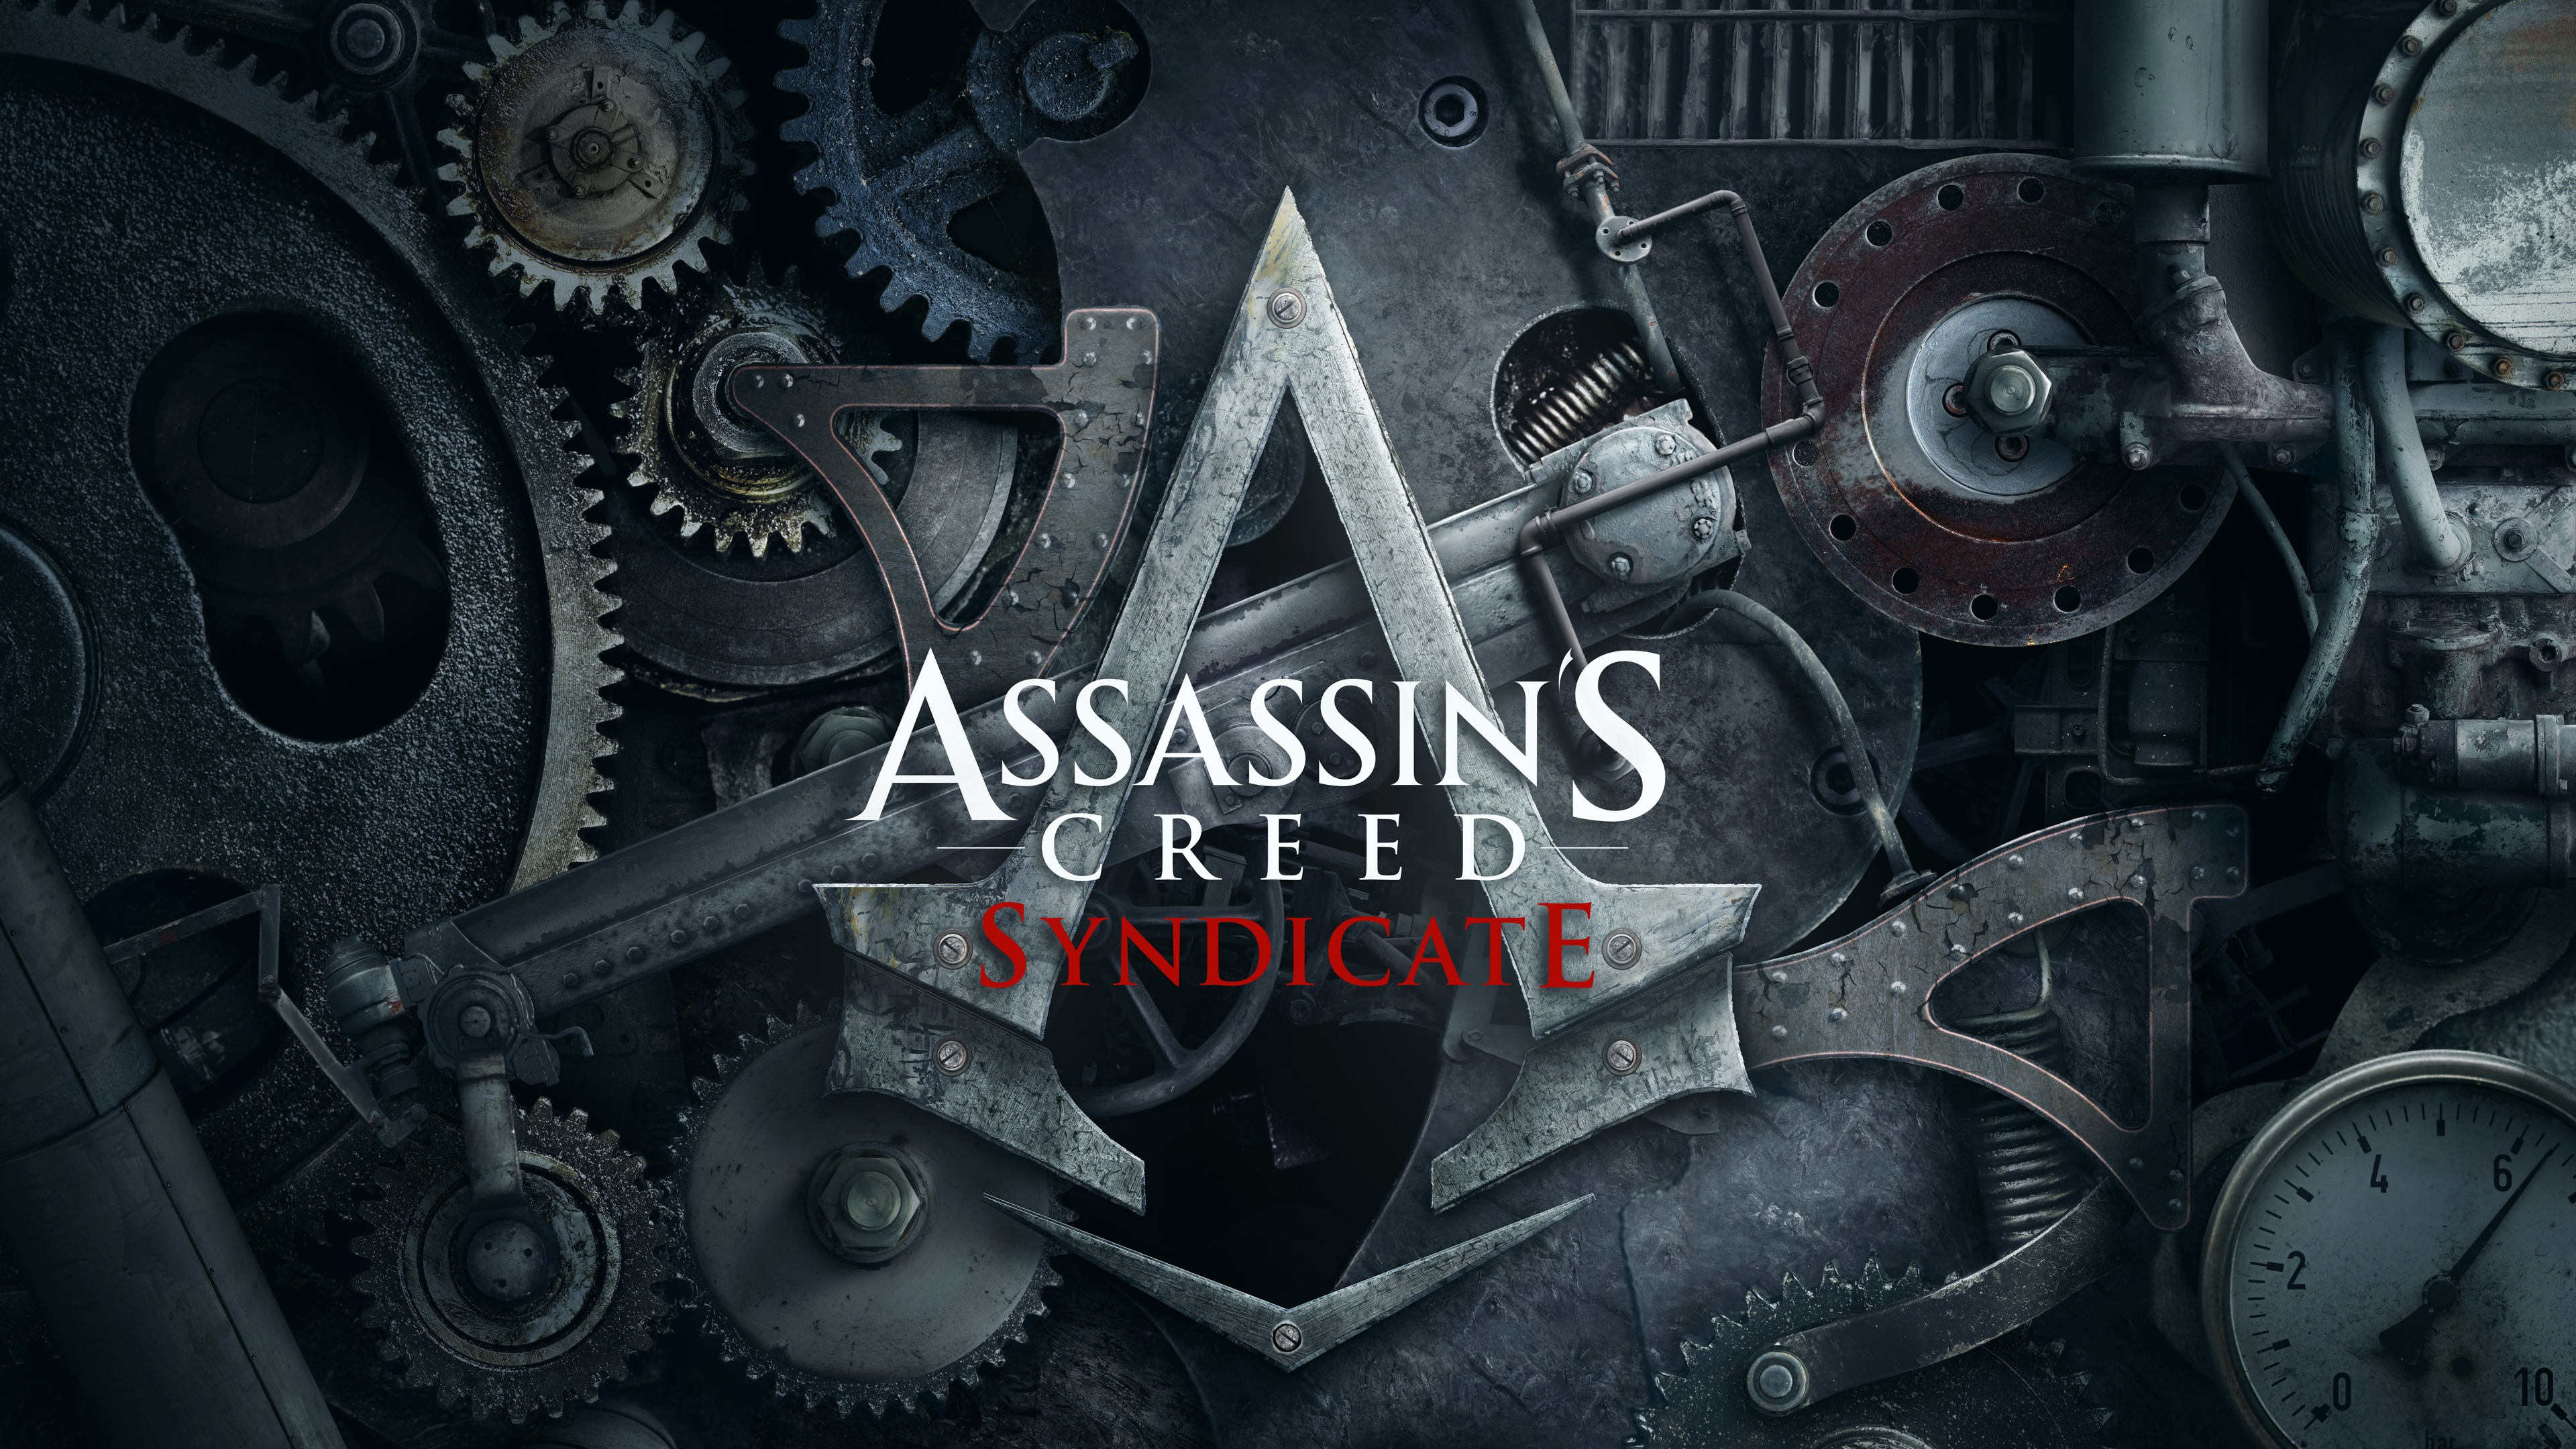 Assassin S Creed Syndicate Logo Wallpapers In Jpg Format For Free